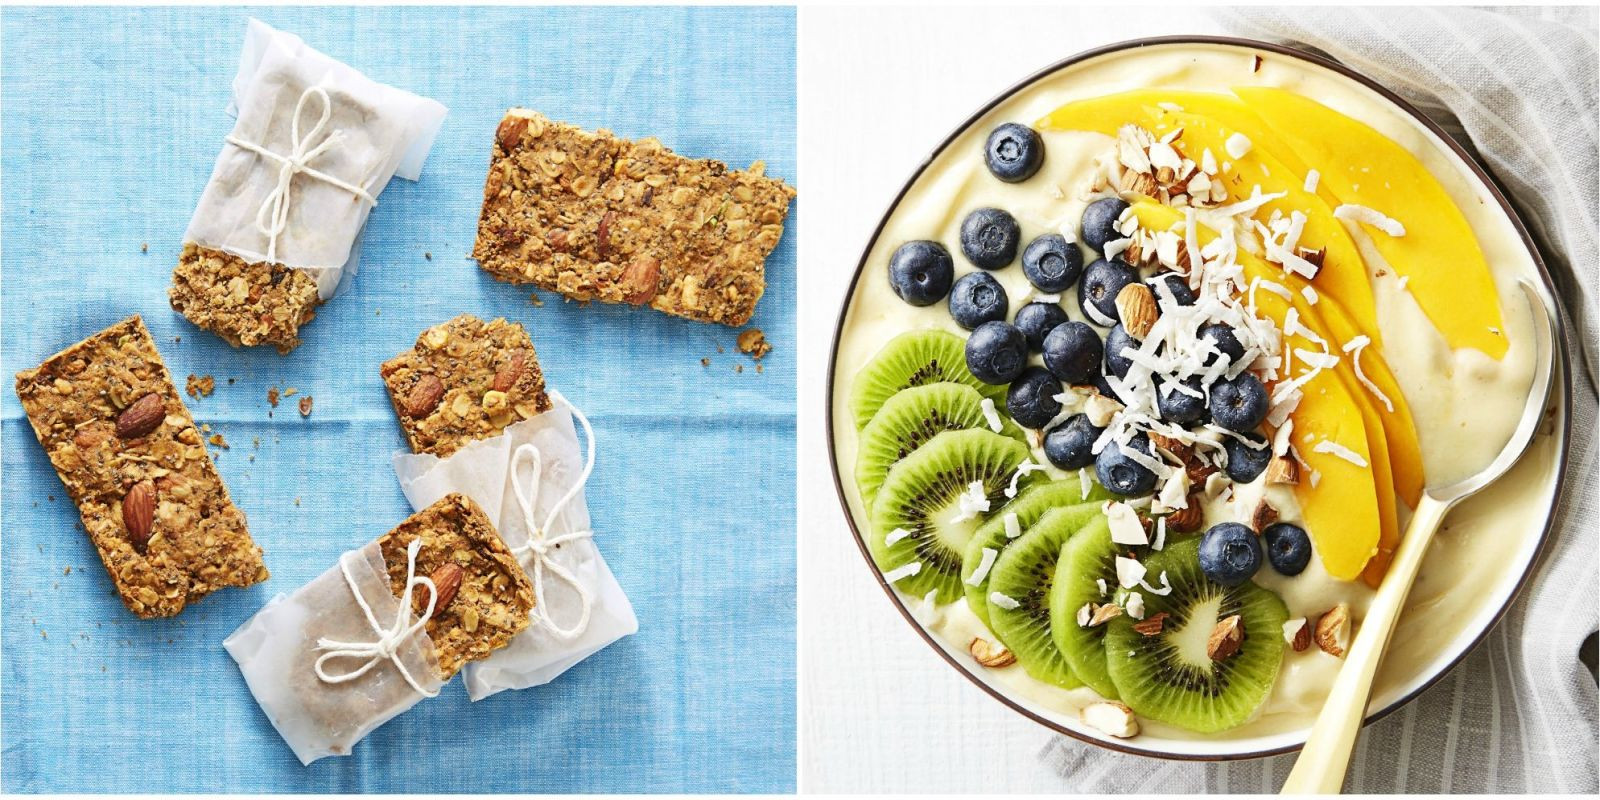 Easy Breakfast Healthy  48 Easy Healthy Breakfast Ideas Recipes for Quick and